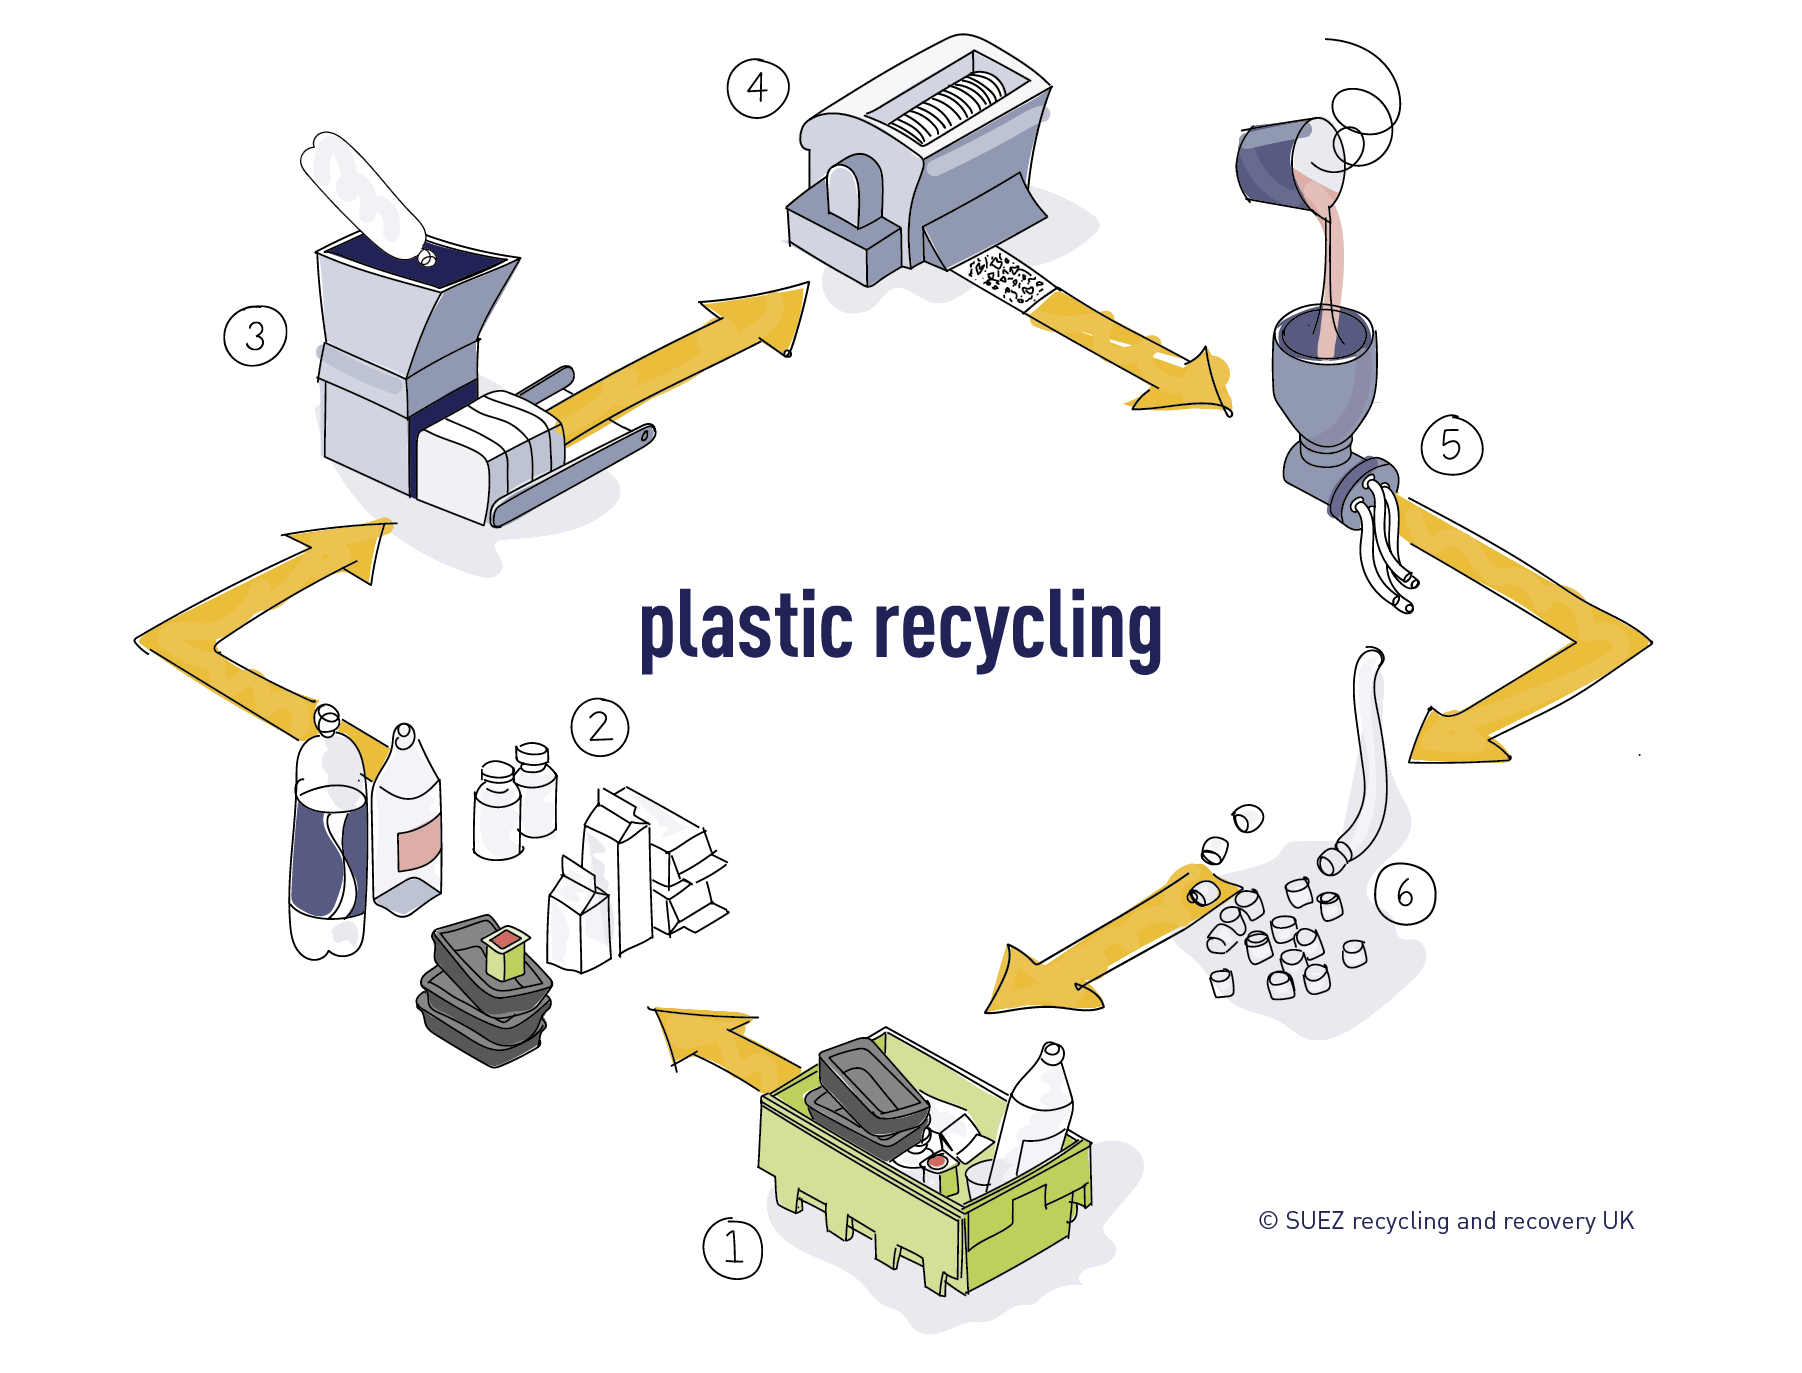 Plastic recycling process SUEZ